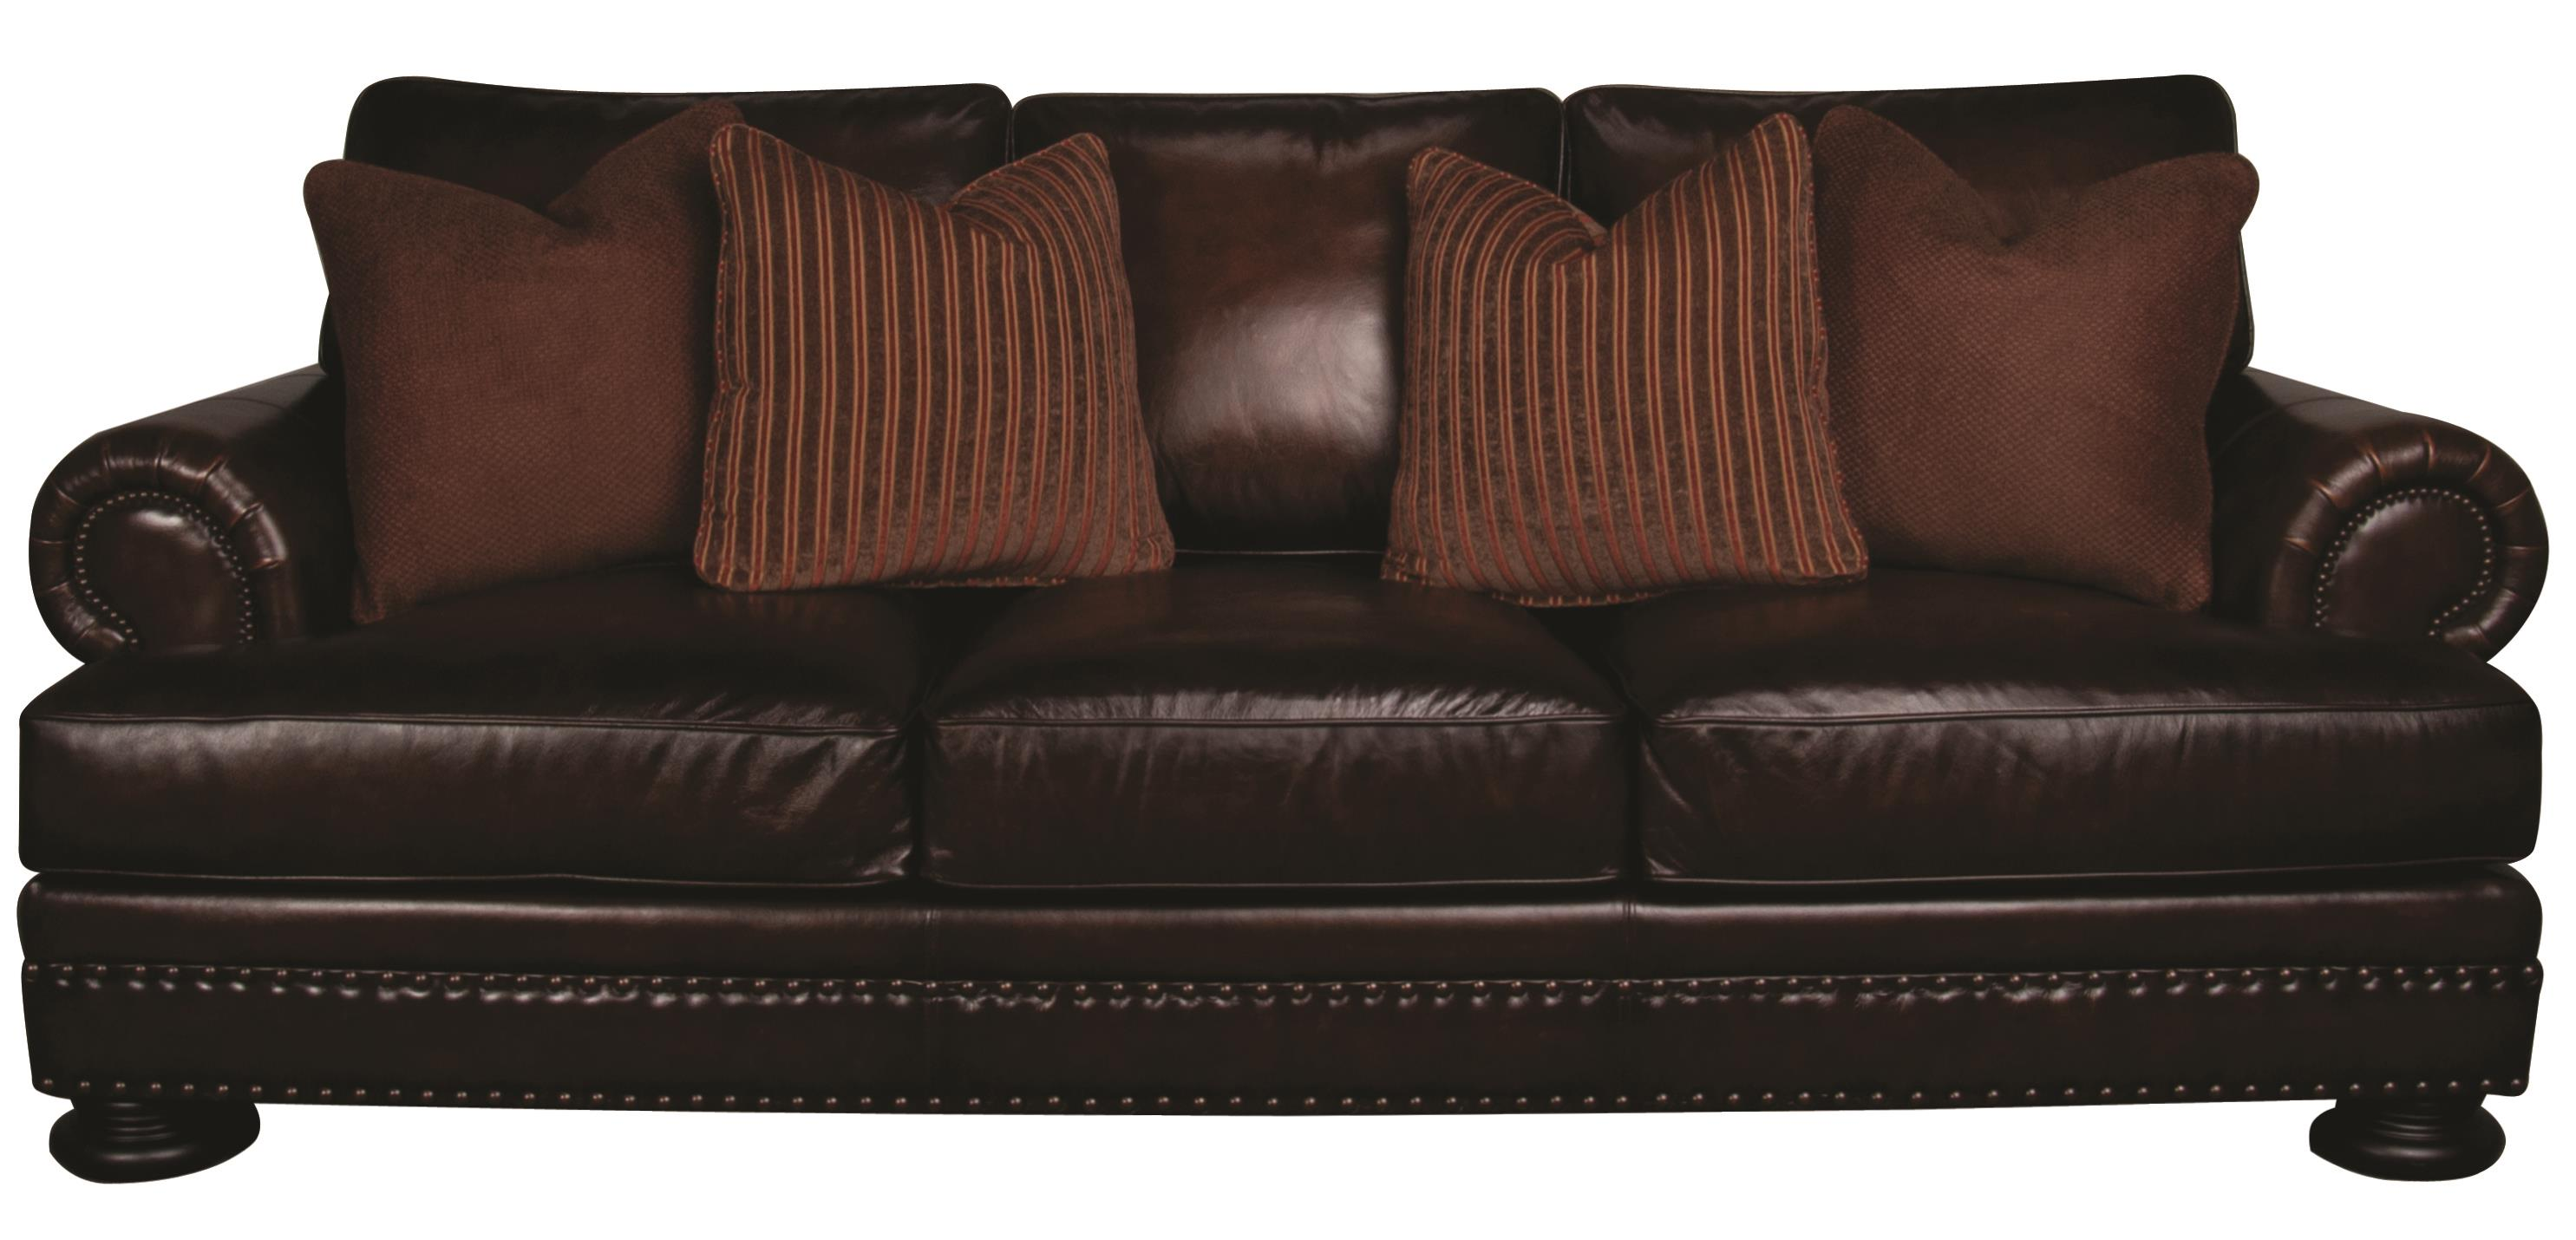 Bernhardt Foster Foster 100% Leather Sofa - Item Number: 592686377